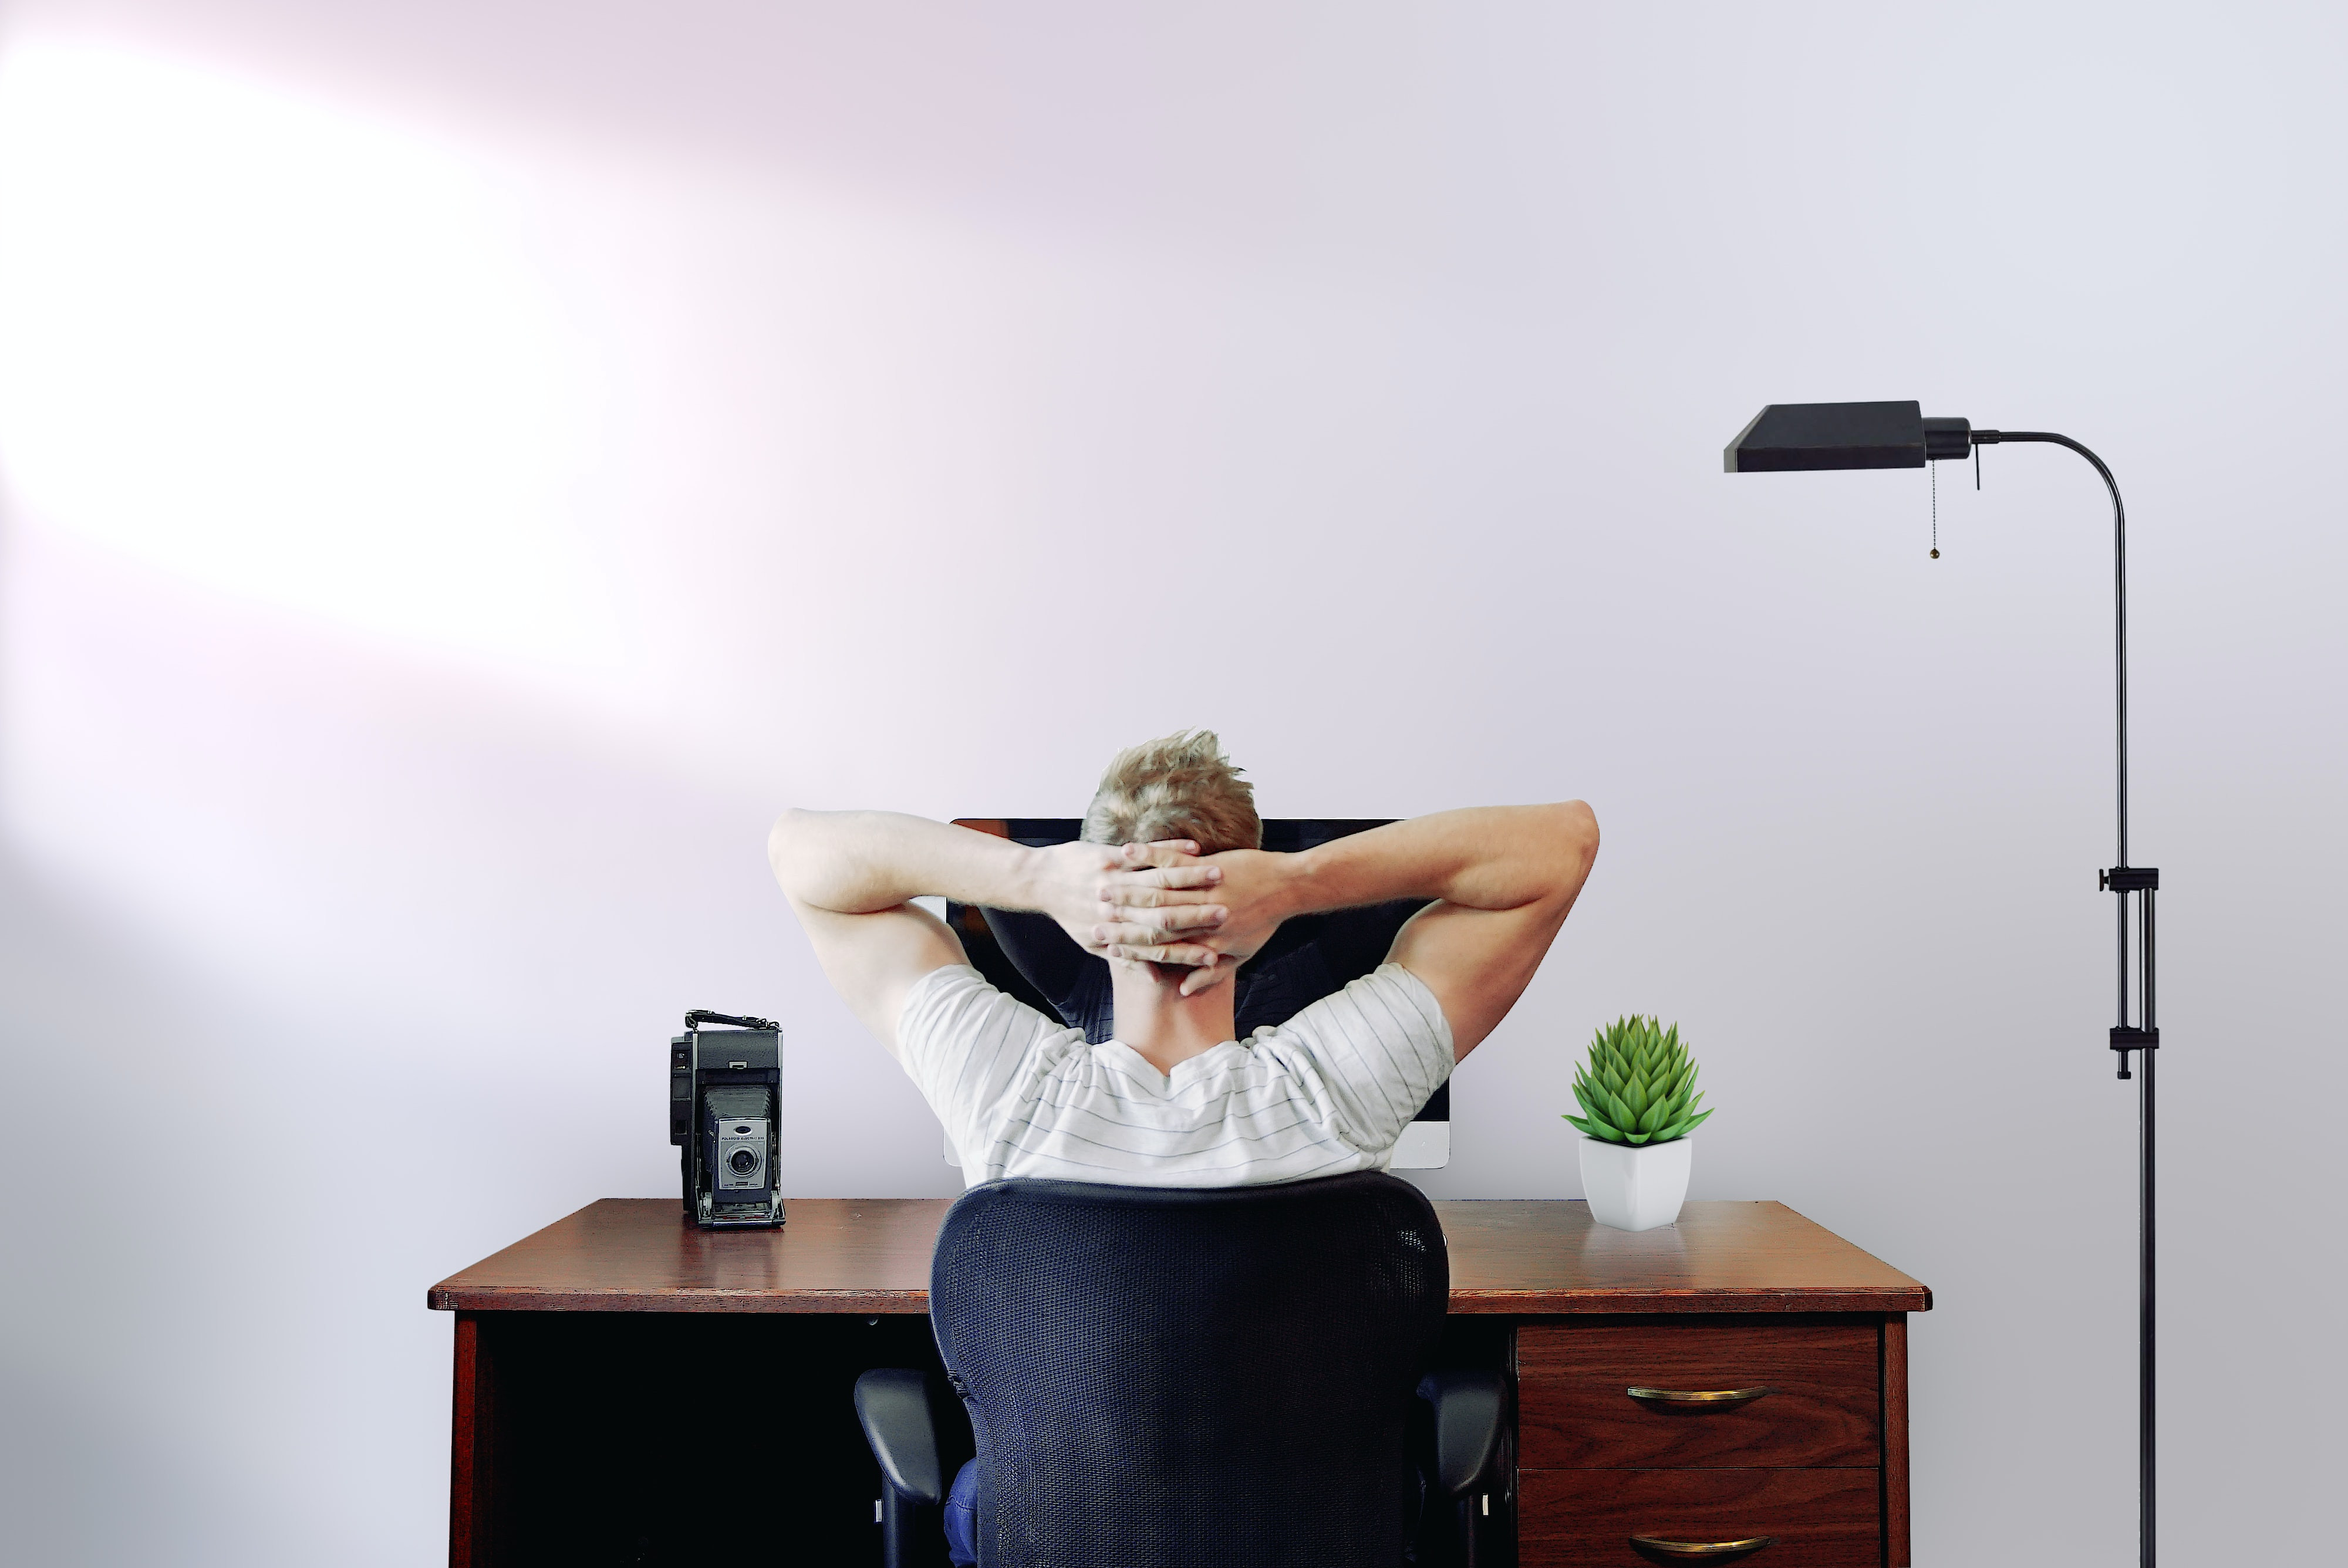 Working from Home- Burnout